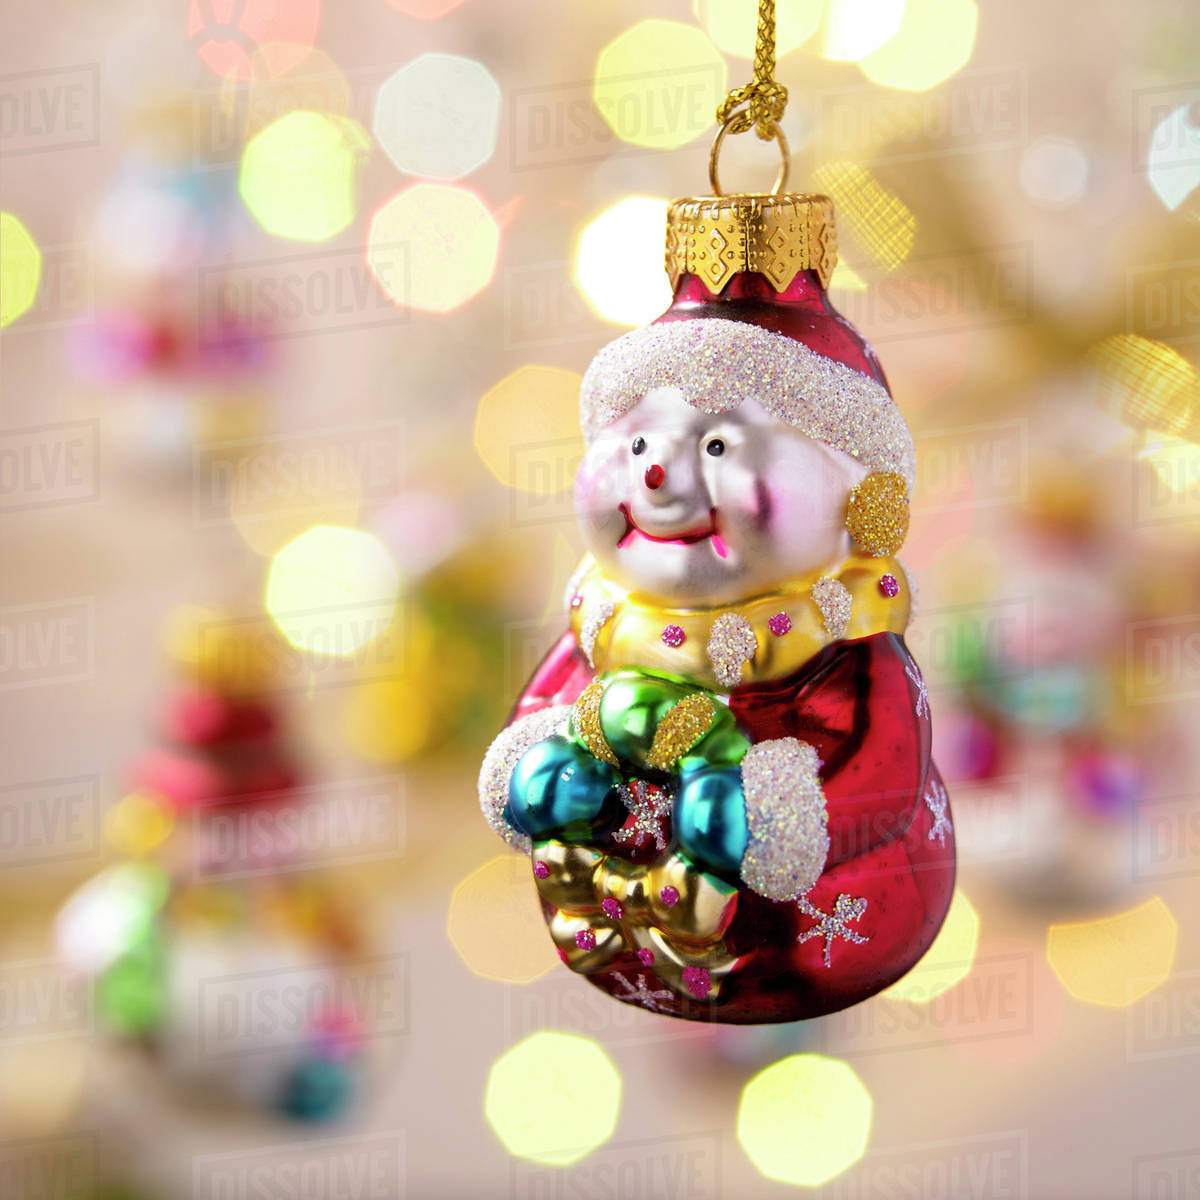 hanging santa christmas ornament with out of focus ornaments in the background victoria british columbia canada